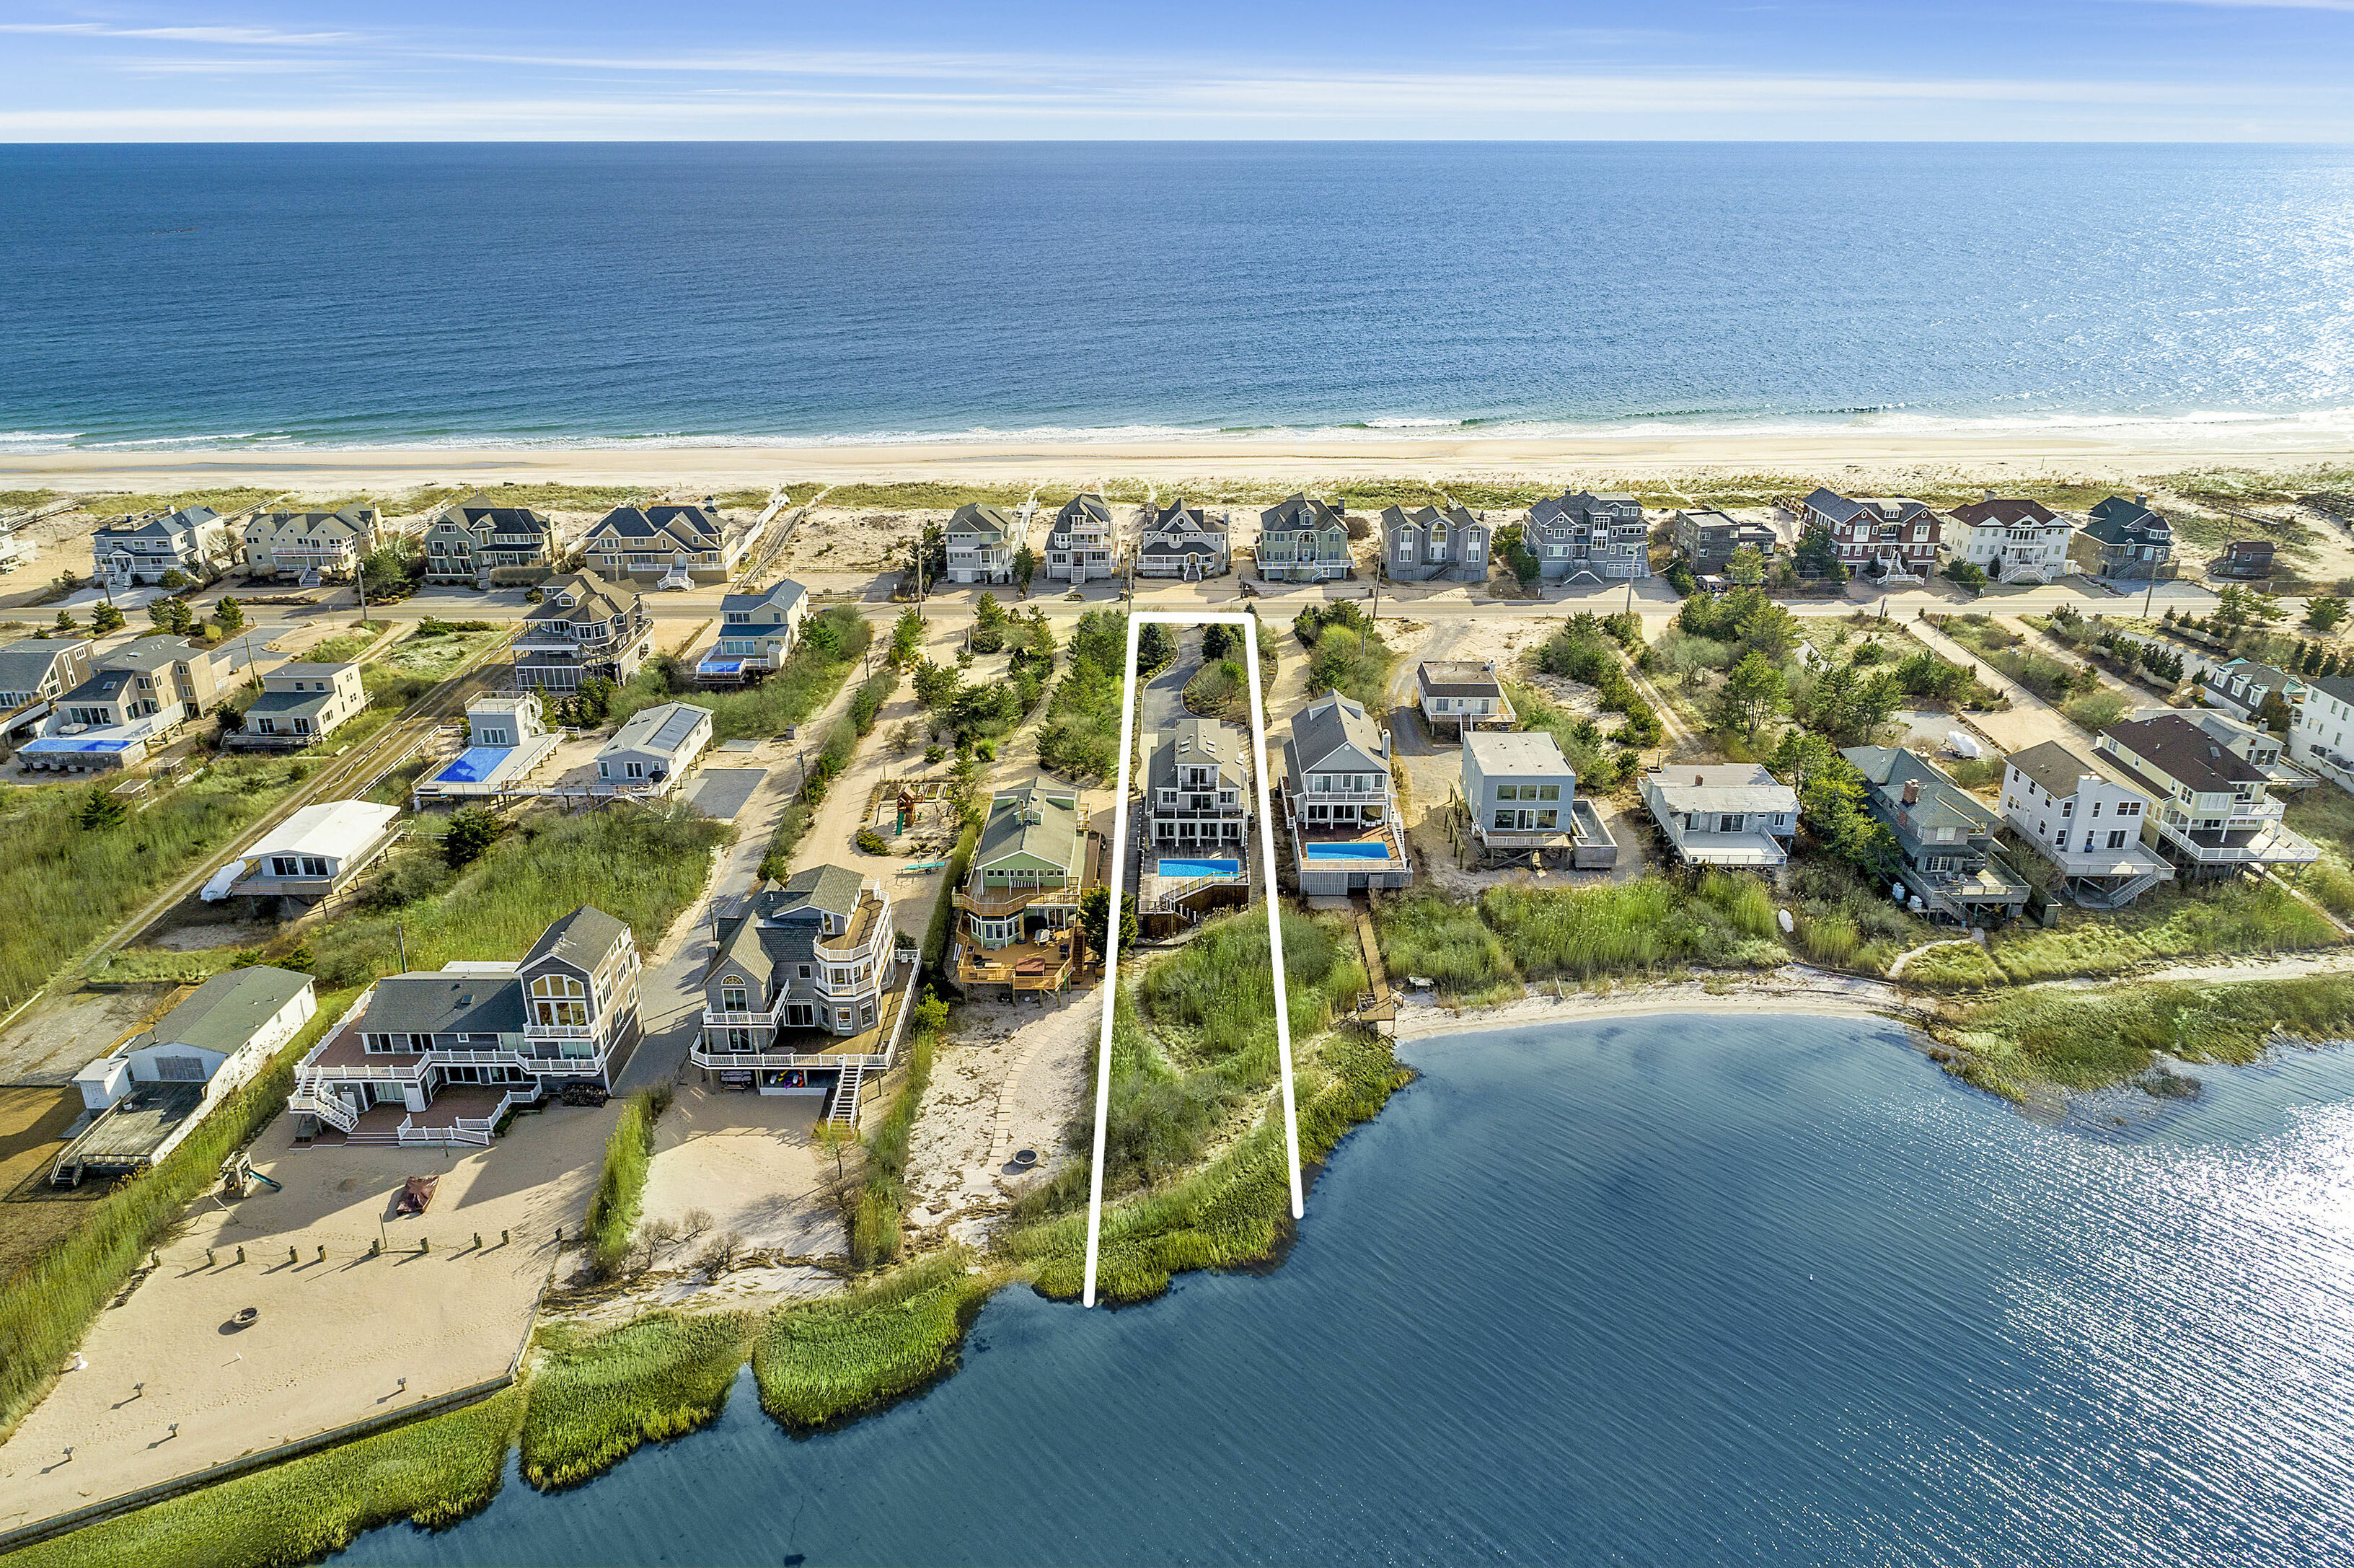 842 Dune Rd - Westhampton Beach South, New York